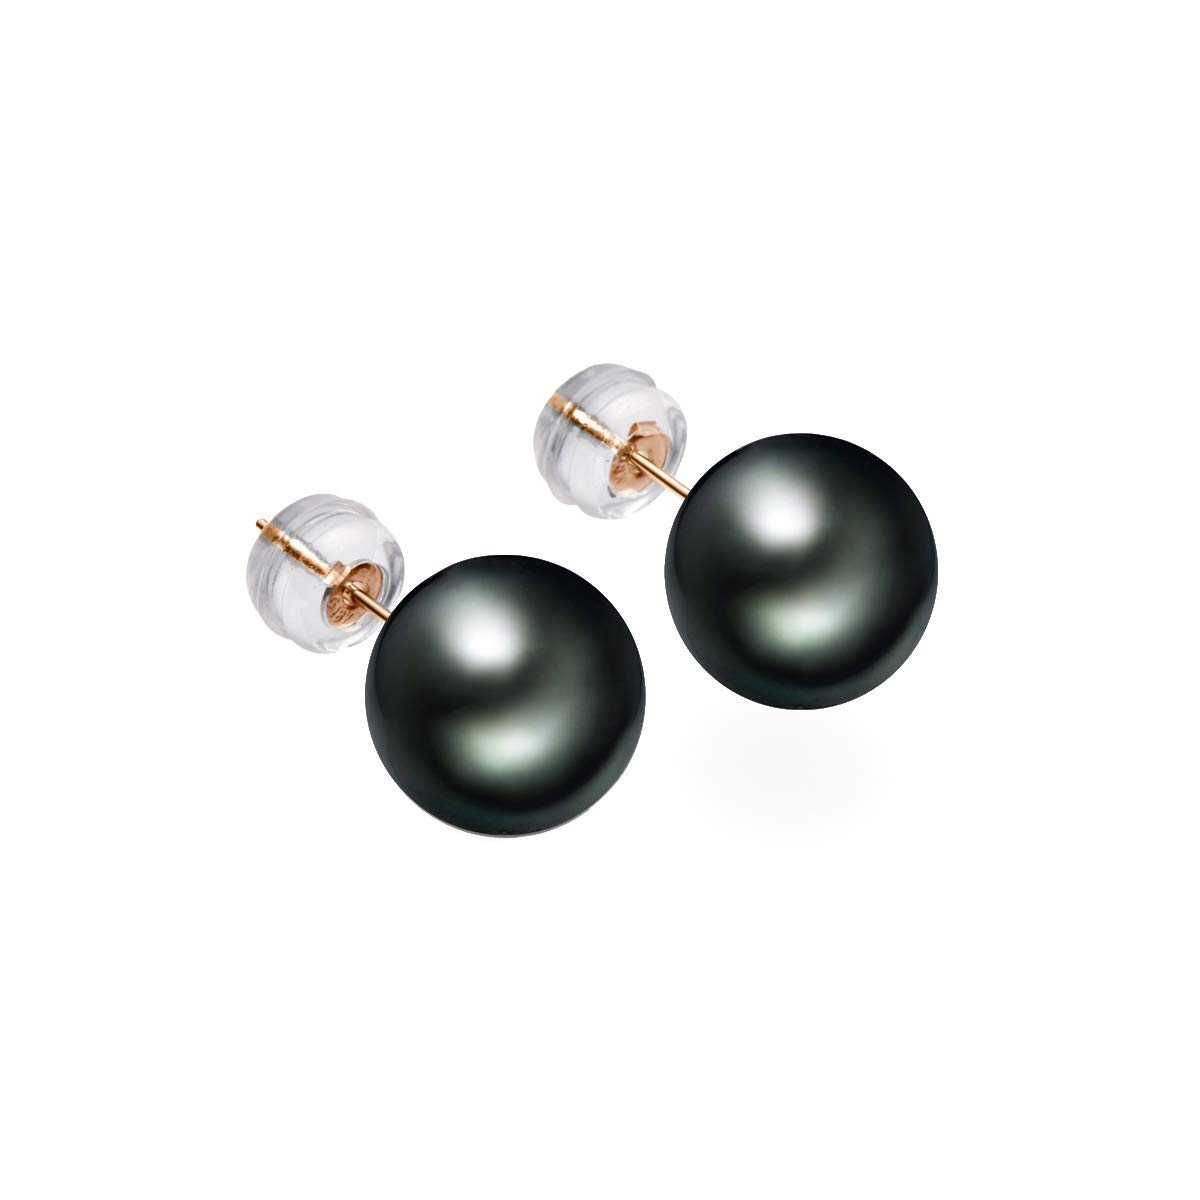 18K Gold Natural Round Cultured Black Pearl Stud Earrings for Women, 8-9mm High Luster Tahitian South Sea Cultured Pearl Earrings